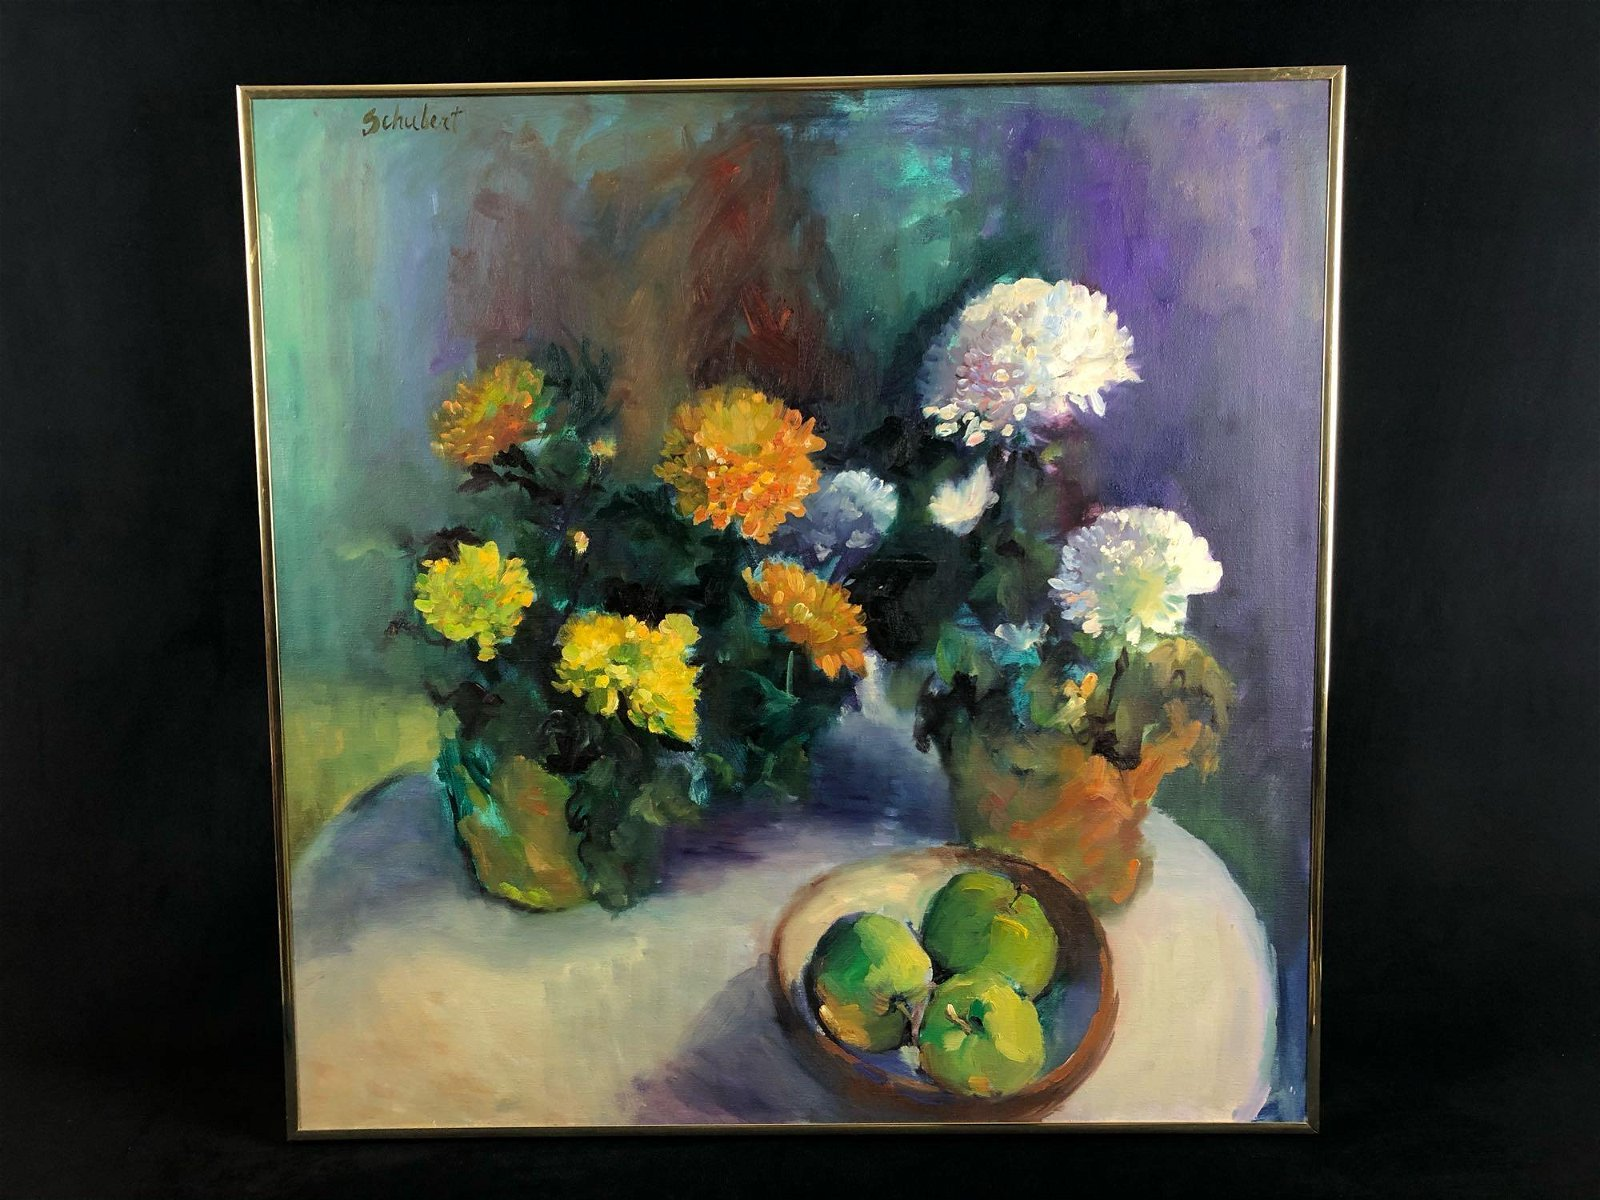 Vintage Original Sighed Jean Schubert Oil On Canvas